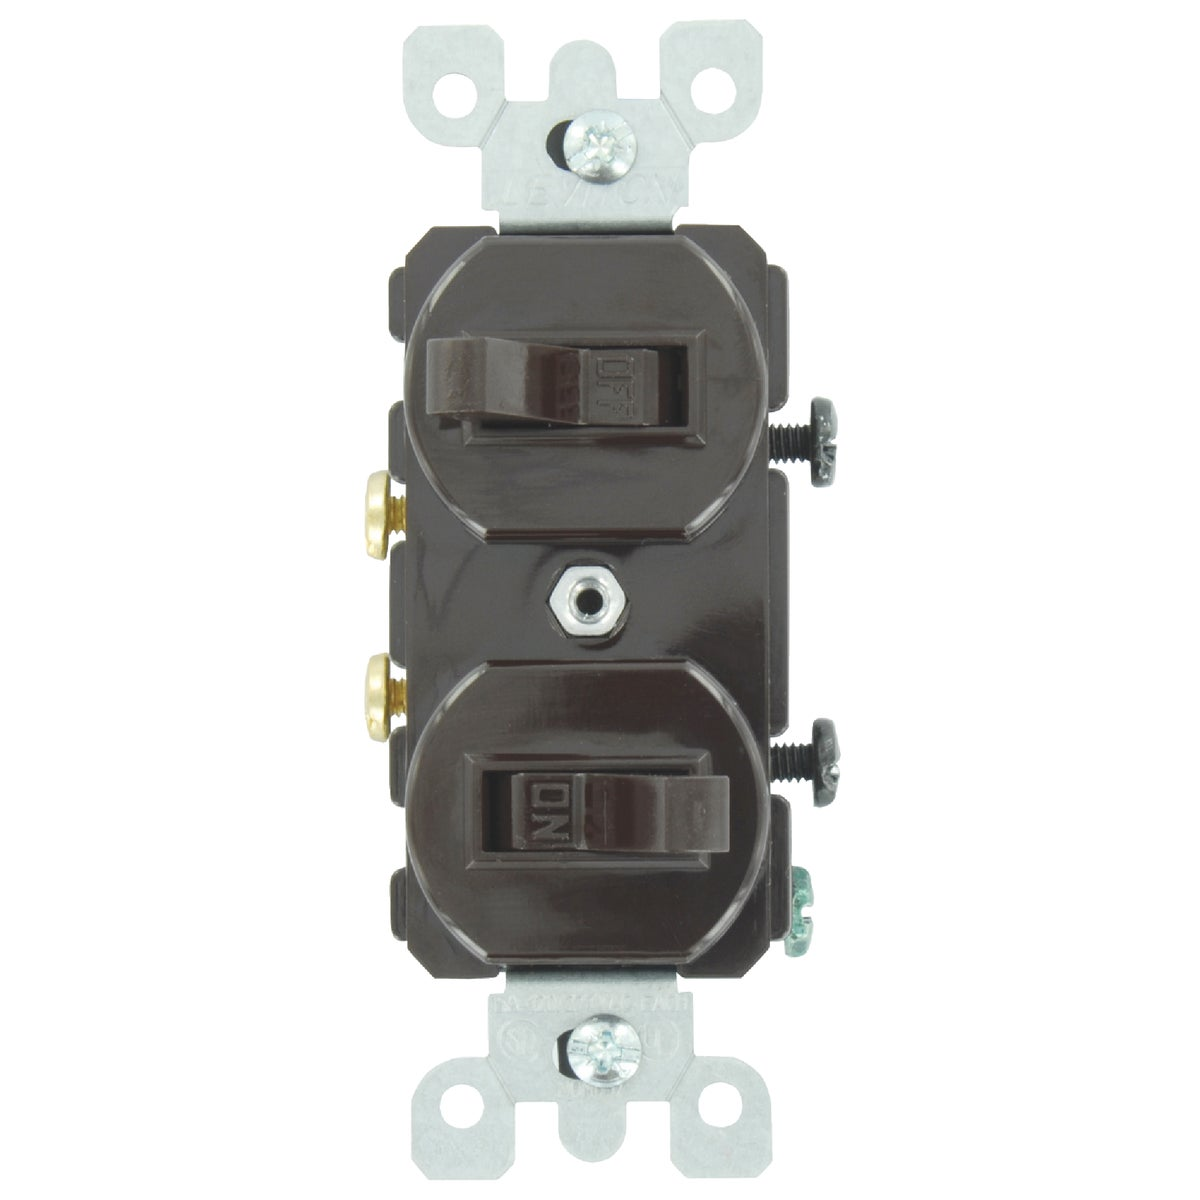 BRN DUPLEX SWITCH - S00-5224-SP by Leviton Mfg Co